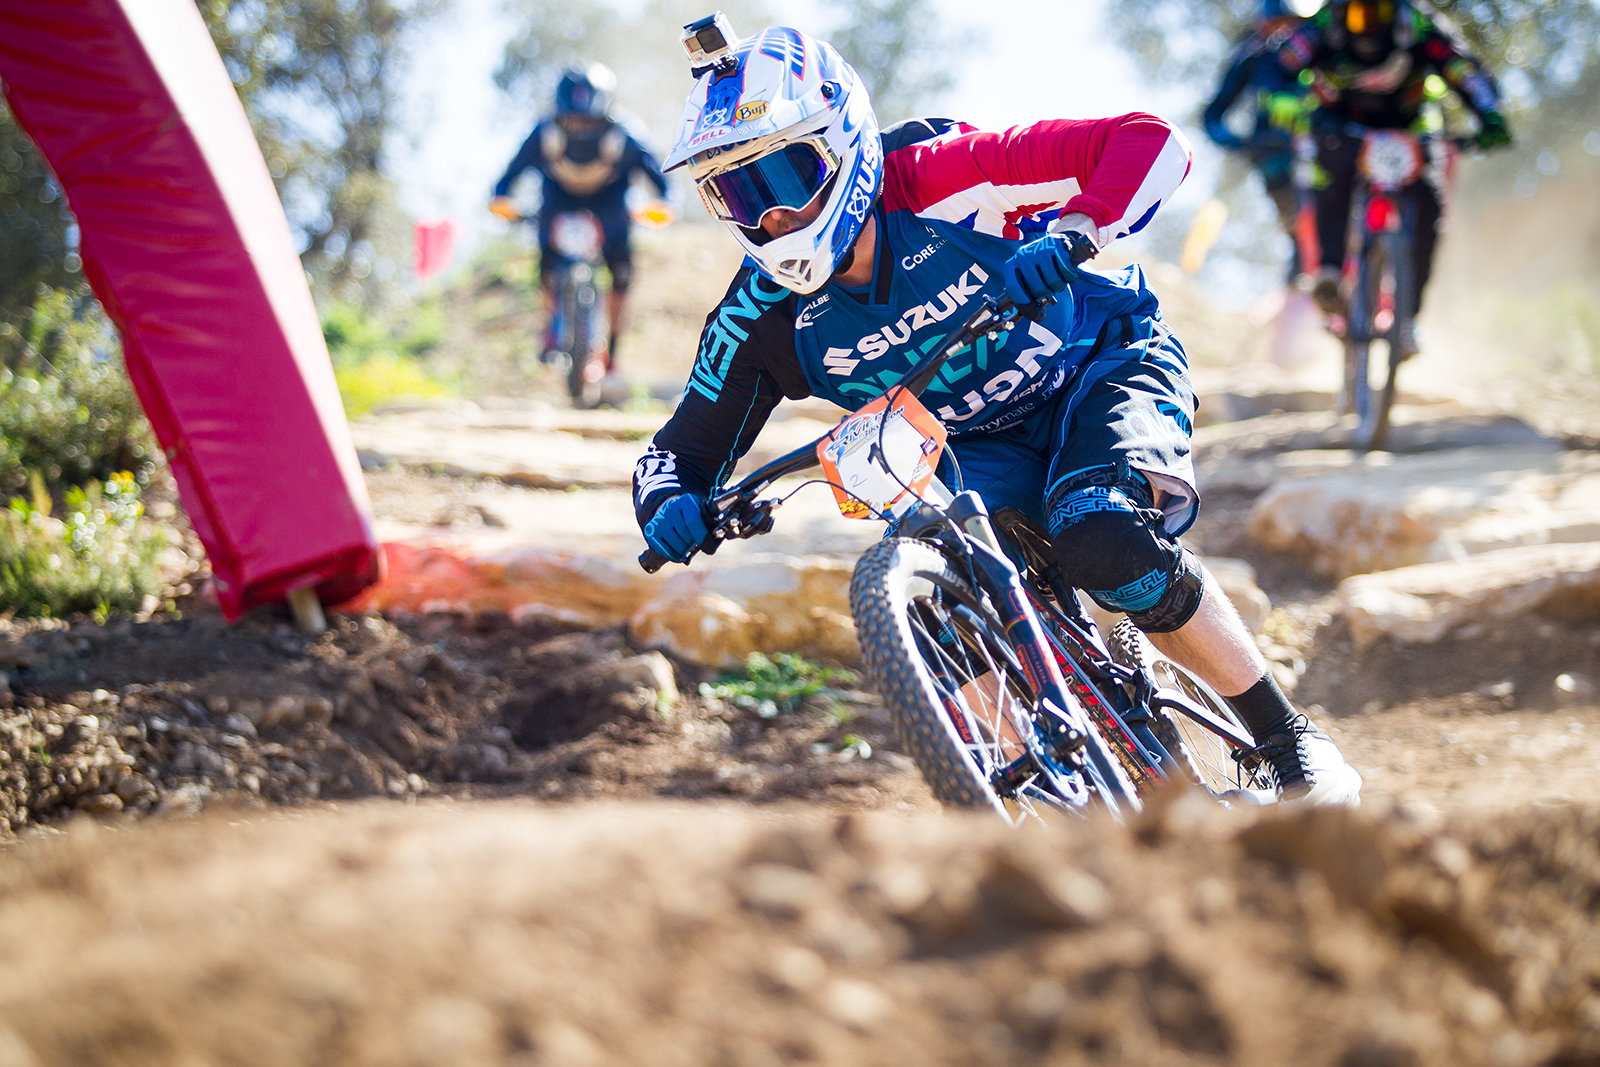 Open practice and finals action during round 1 of the 4X Pro Tour at Azur Bike Park, Rocqbrune, , France on April 09 2017. Photo: Charles A Robertson